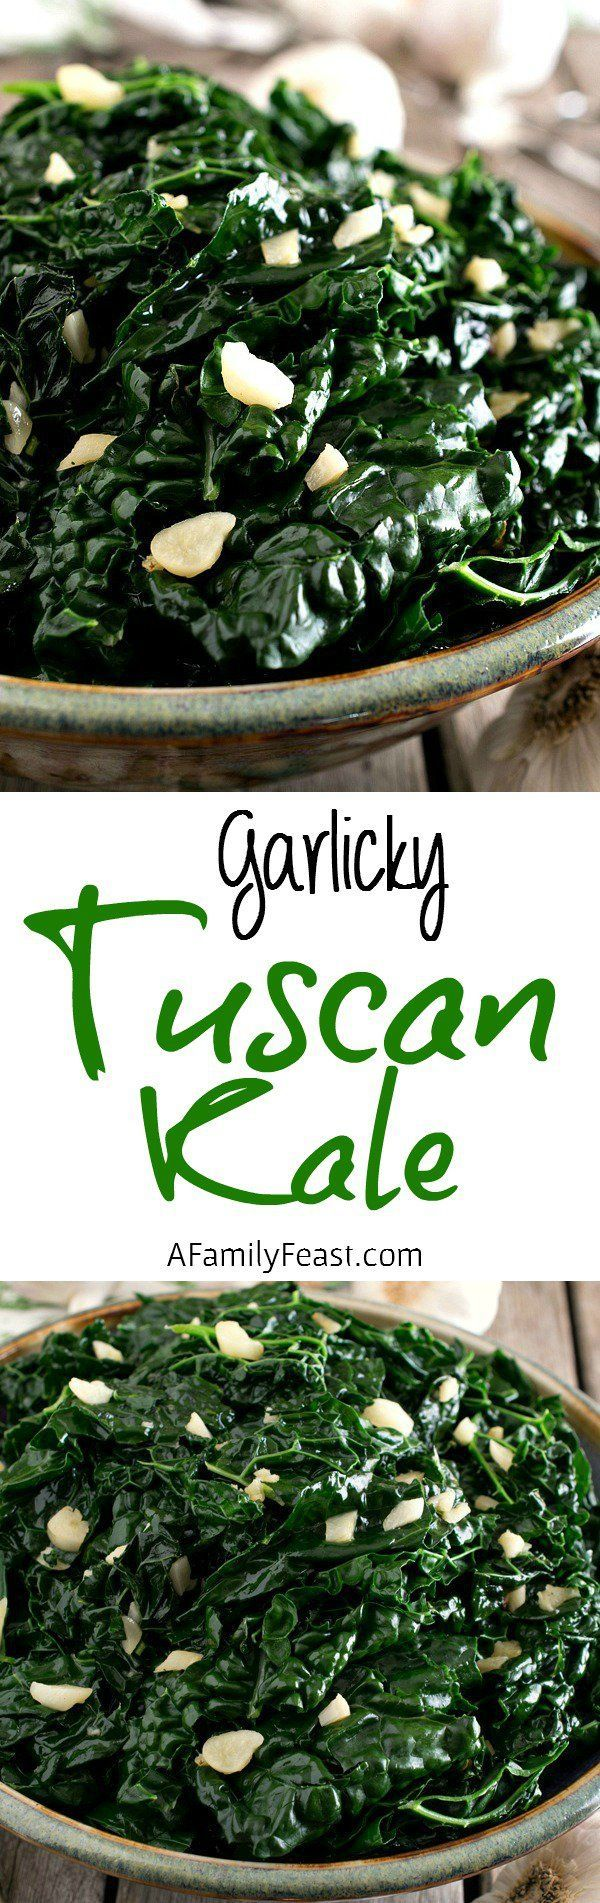 This Garlicky Tuscan Kale is a quick and easy side dish that is delicious with any meal!